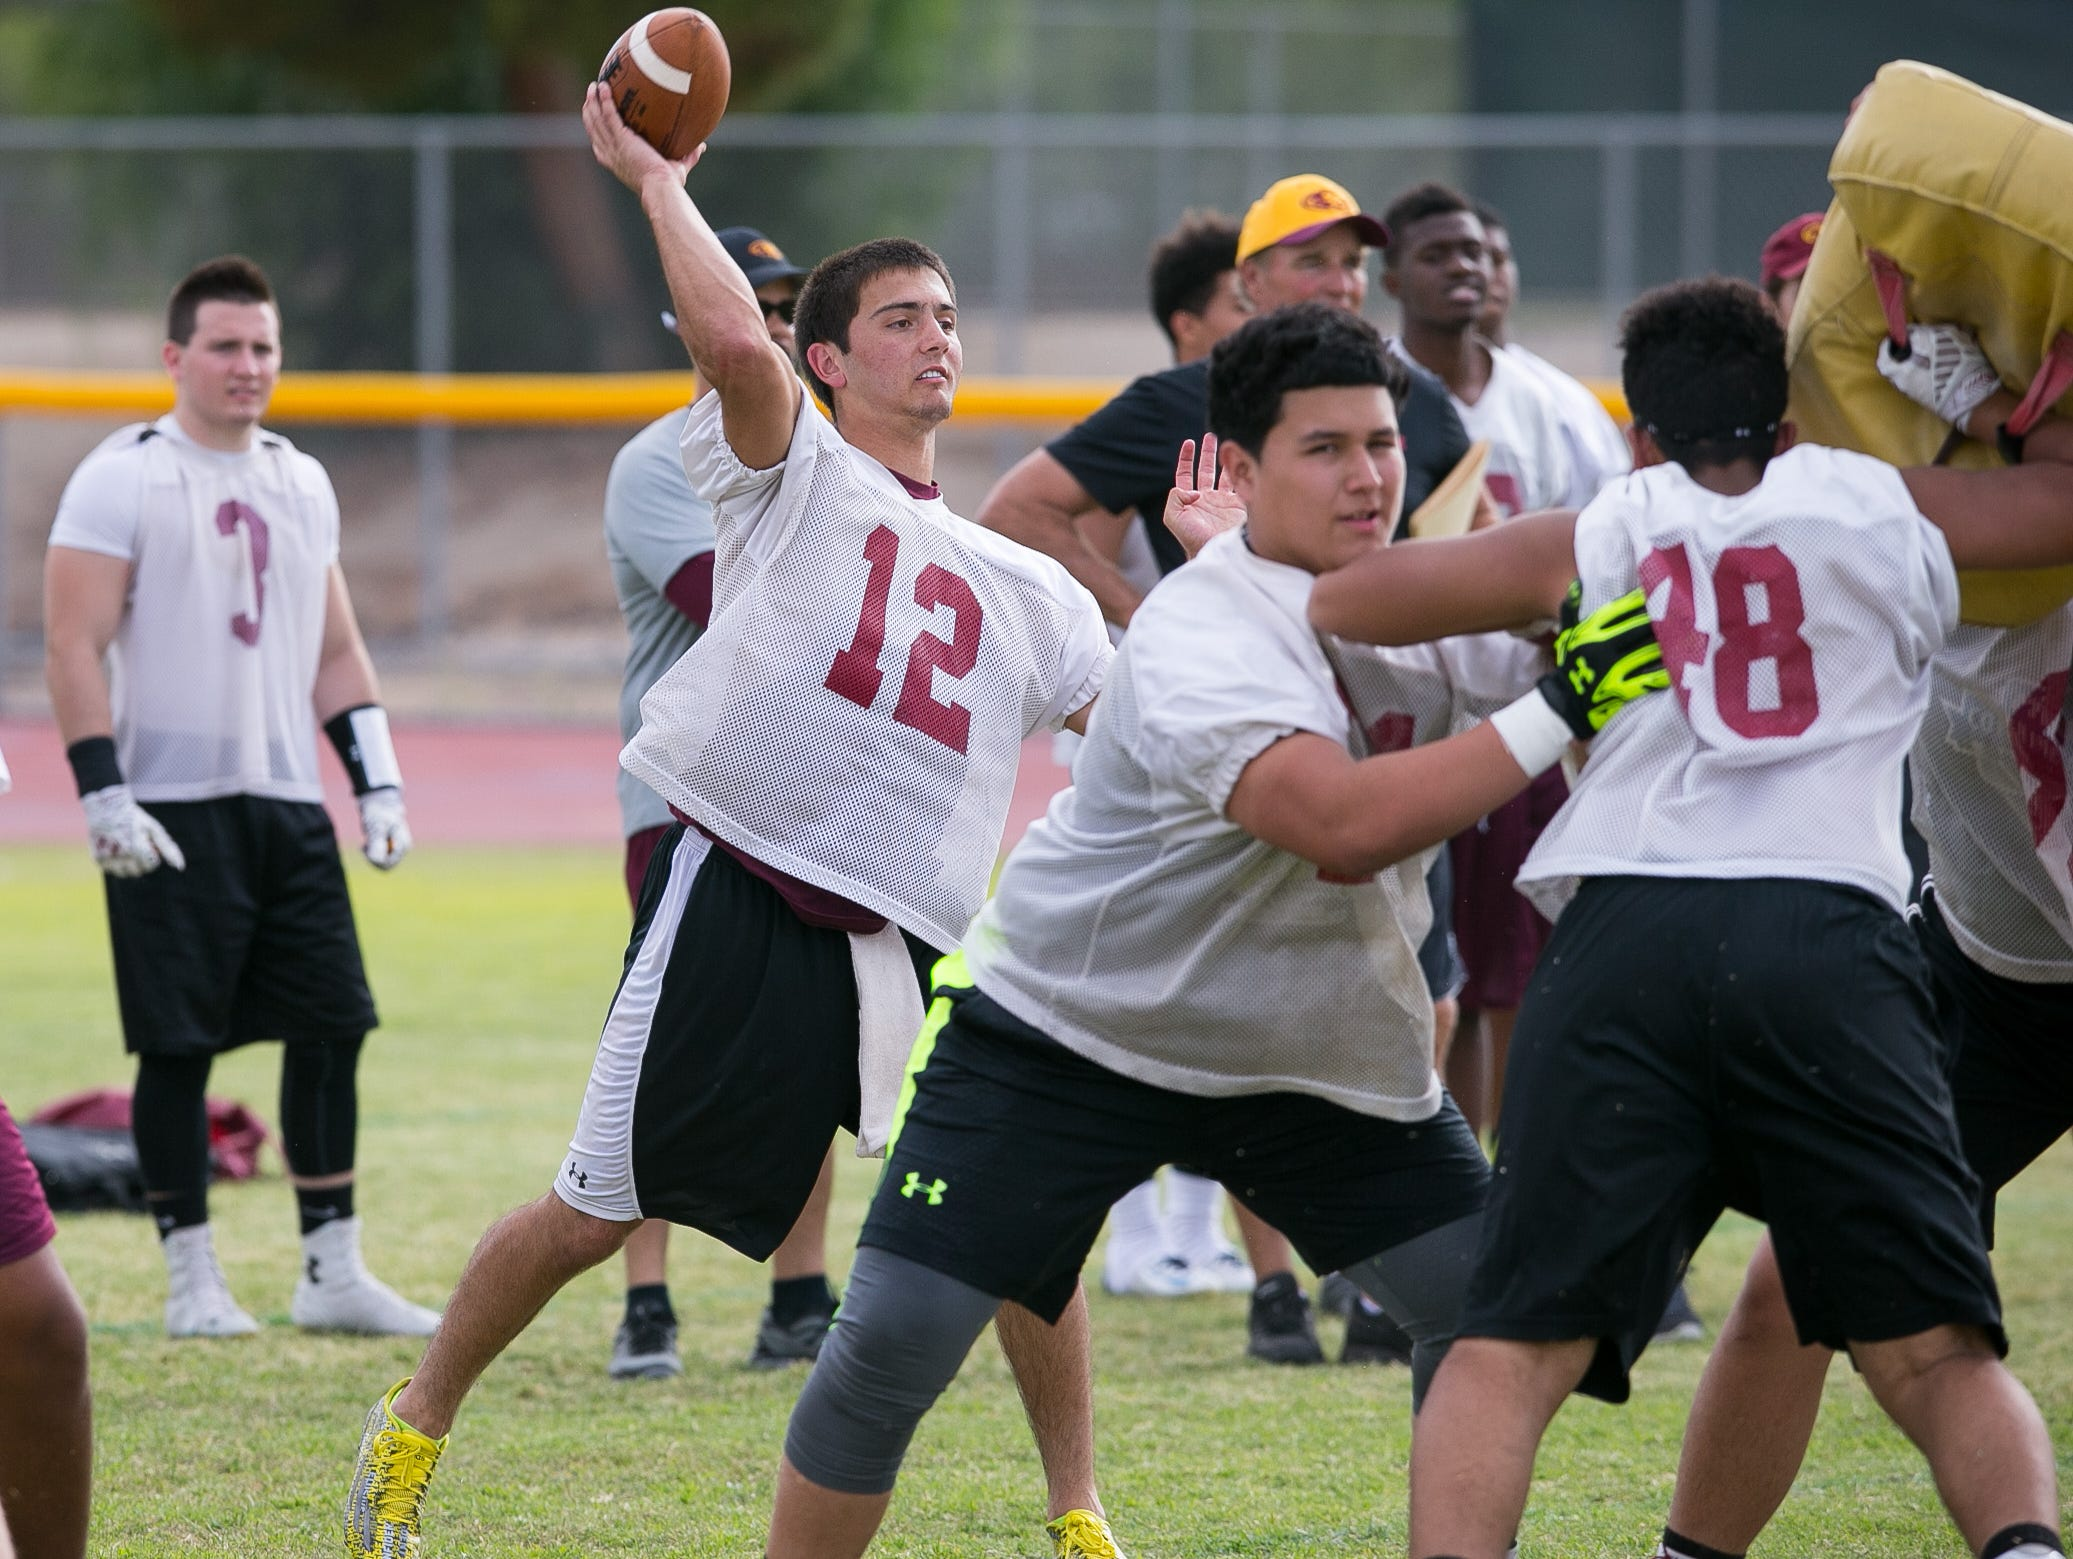 Jack Smith is ready to lead Phoenix Mountain Pointe as maybe the most talented quarterback coach Norris Vaughan has had since he began building this powerhouse in 2009.